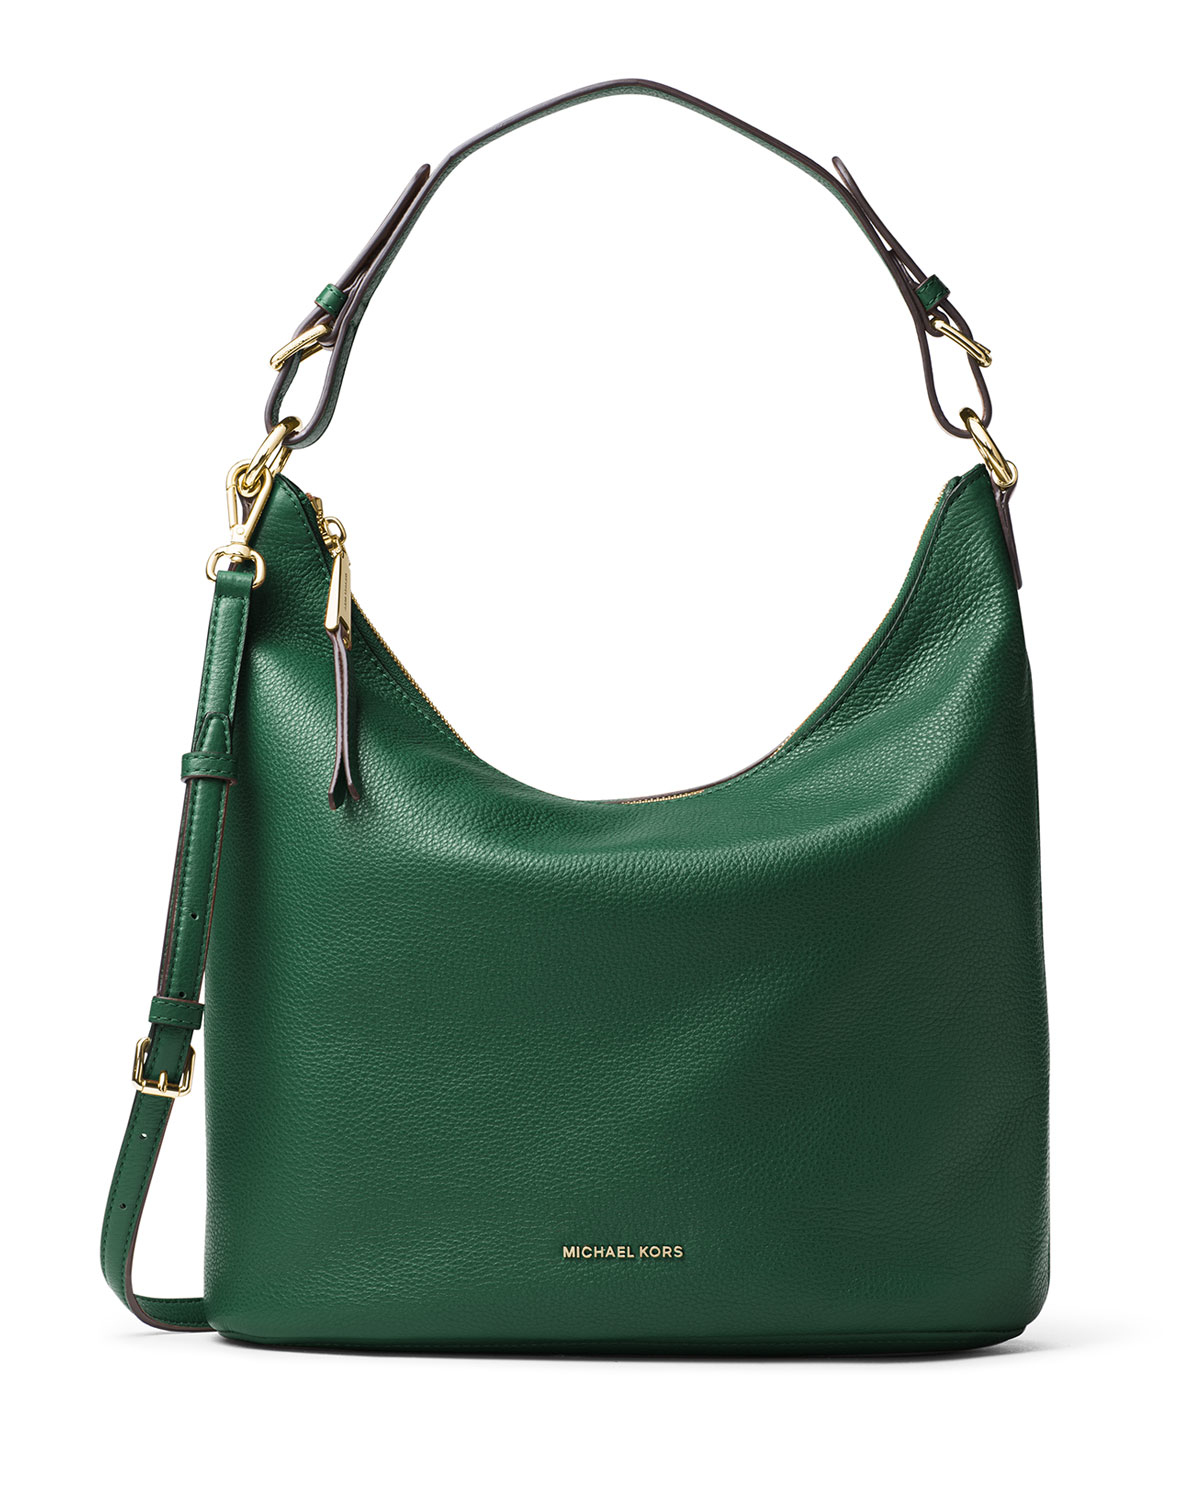 Michael michael kors Lupita Large Leather Hobo Bag in Green | Lyst